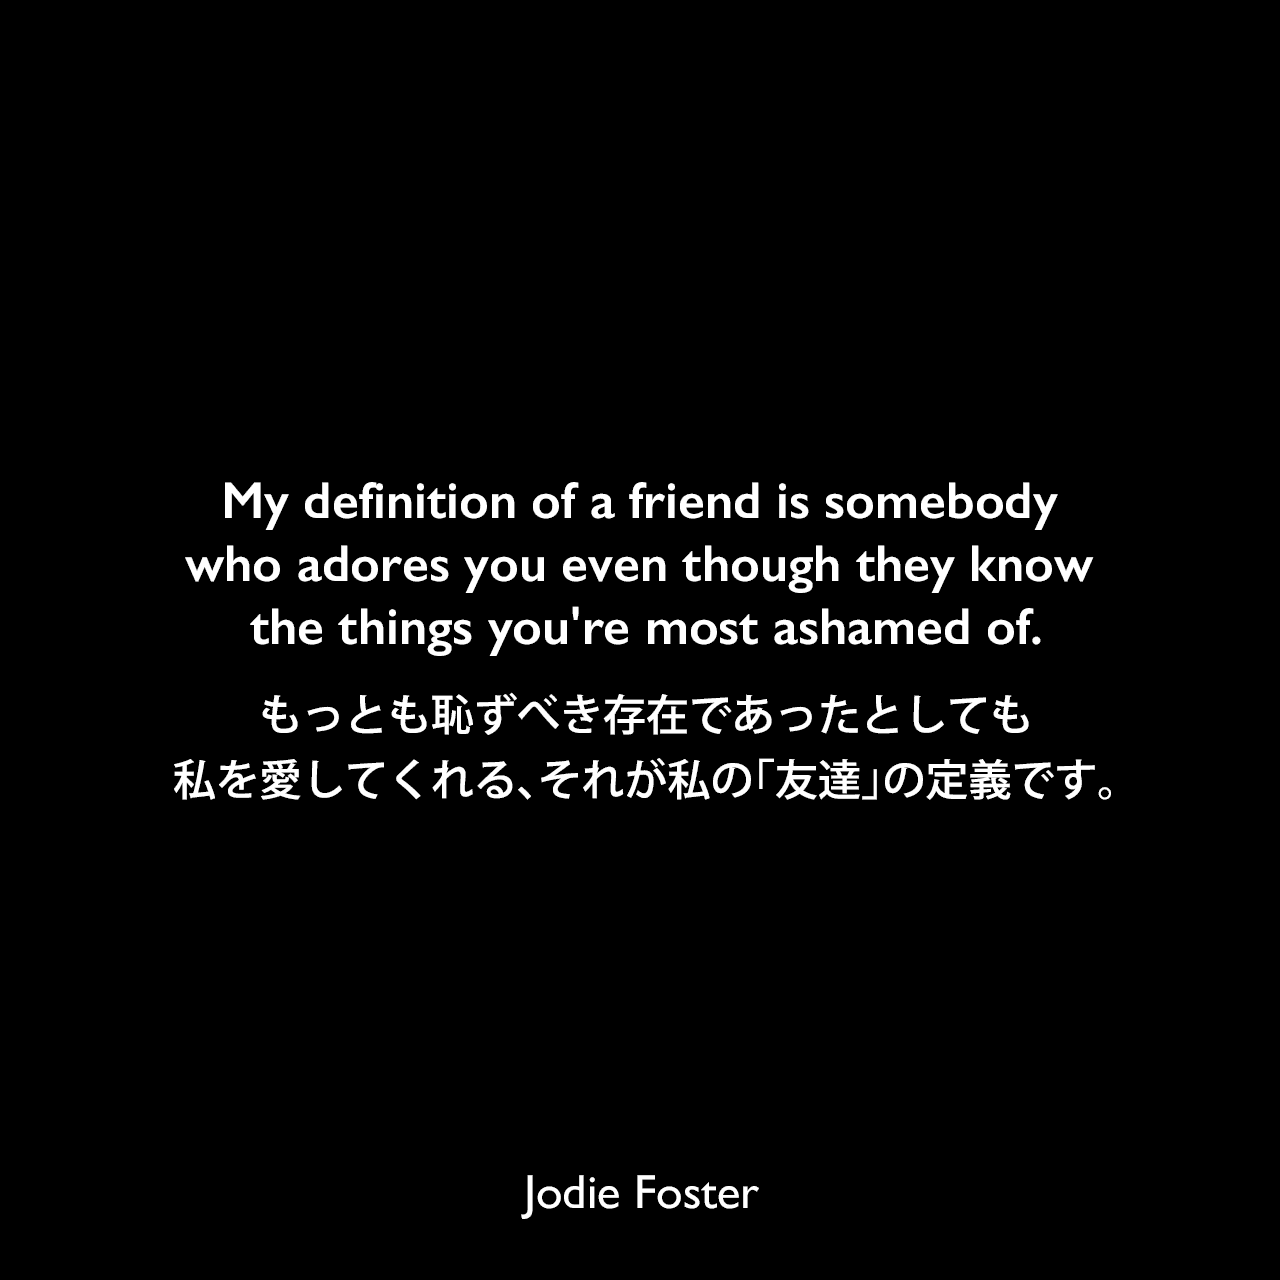 My definition of a friend is somebody who adores you even though they know the things you're most ashamed of.もっとも恥ずべき存在であったとしても私を愛してくれる、それが私の「友達」の定義です。